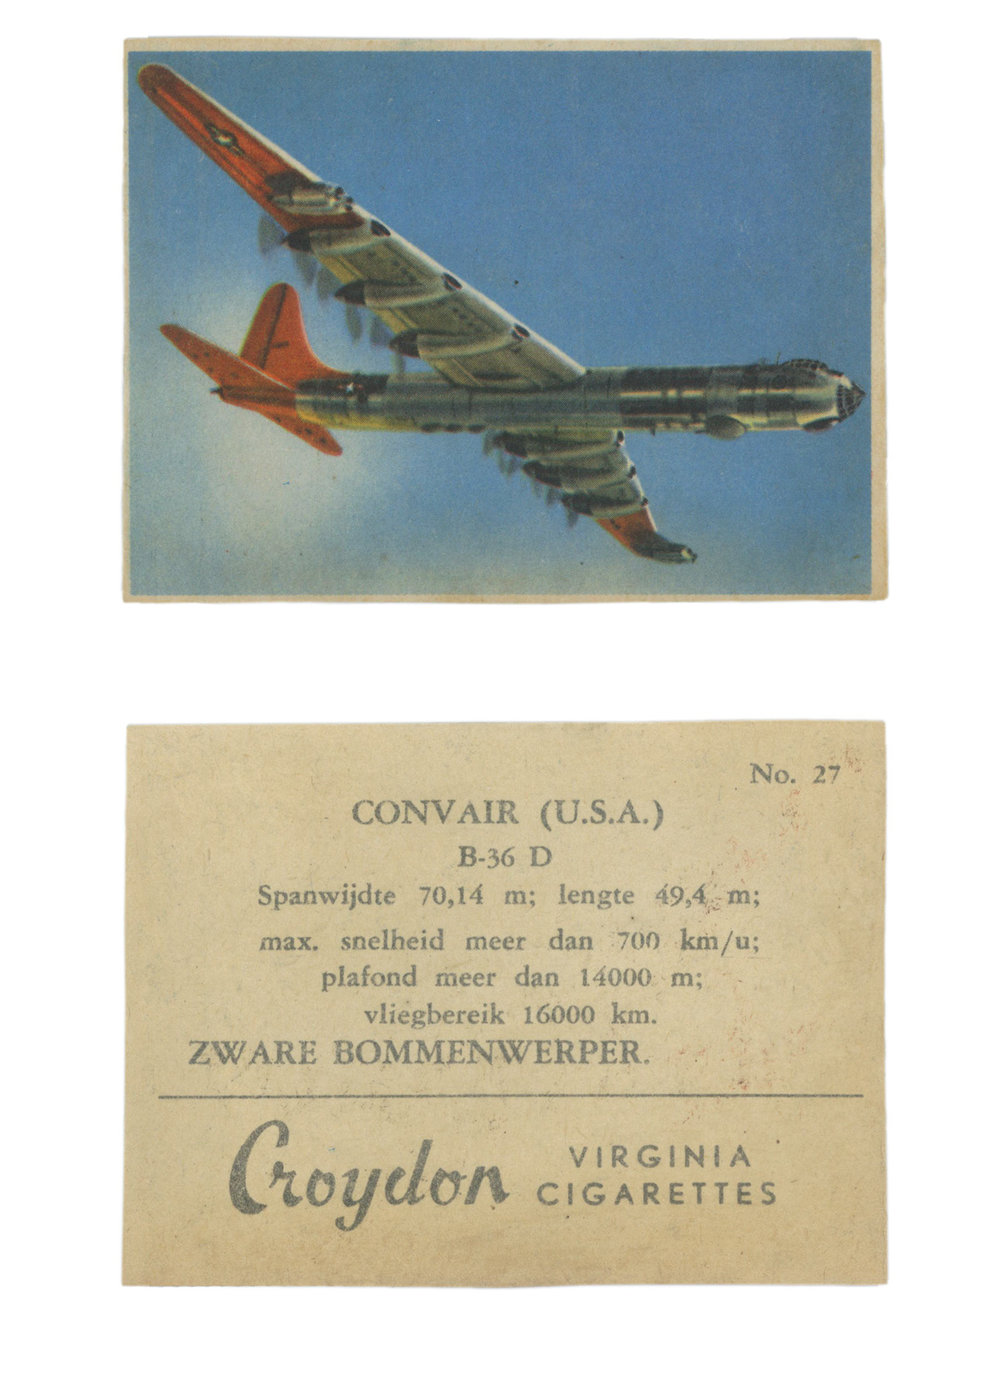 Convair B-36 D #27 Series: Croydon Aircraft Series Manufacture: Croydon Cigarettes Card Dimensions: 3 x 2.25 inches Netherlands -1950's